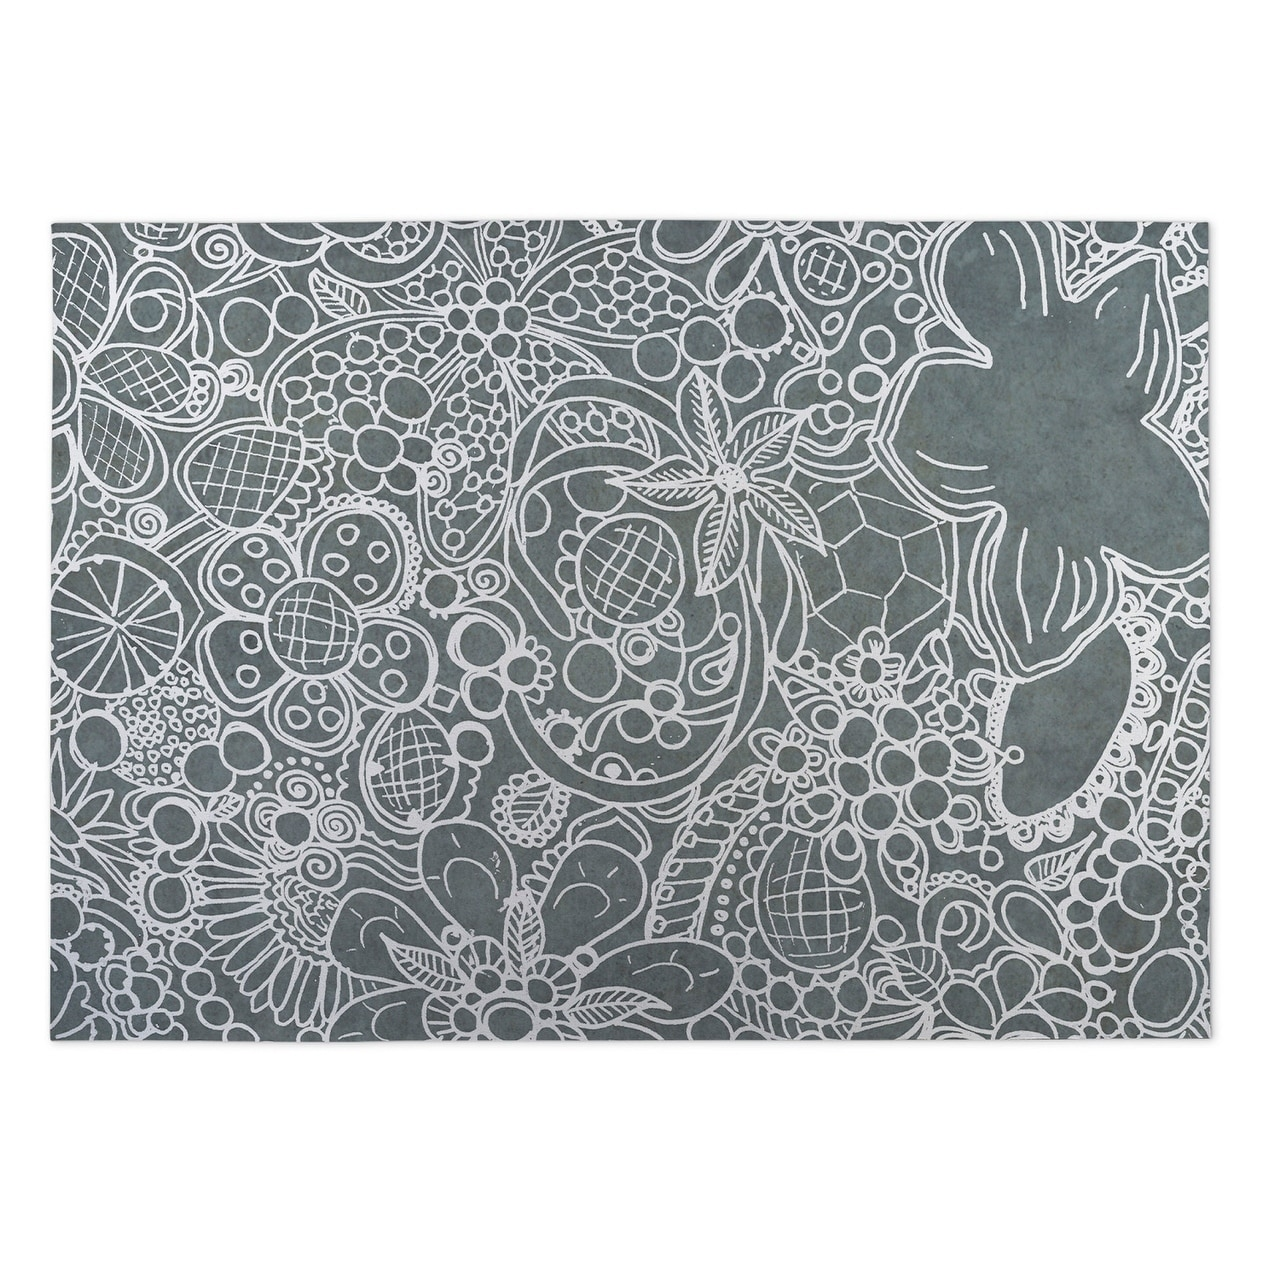 Kavka Designs White/ Grey Expressions 2 x 3 Indoor/ Outdoor Floor Mat (White - N/A - Bohemian & Eclectic)